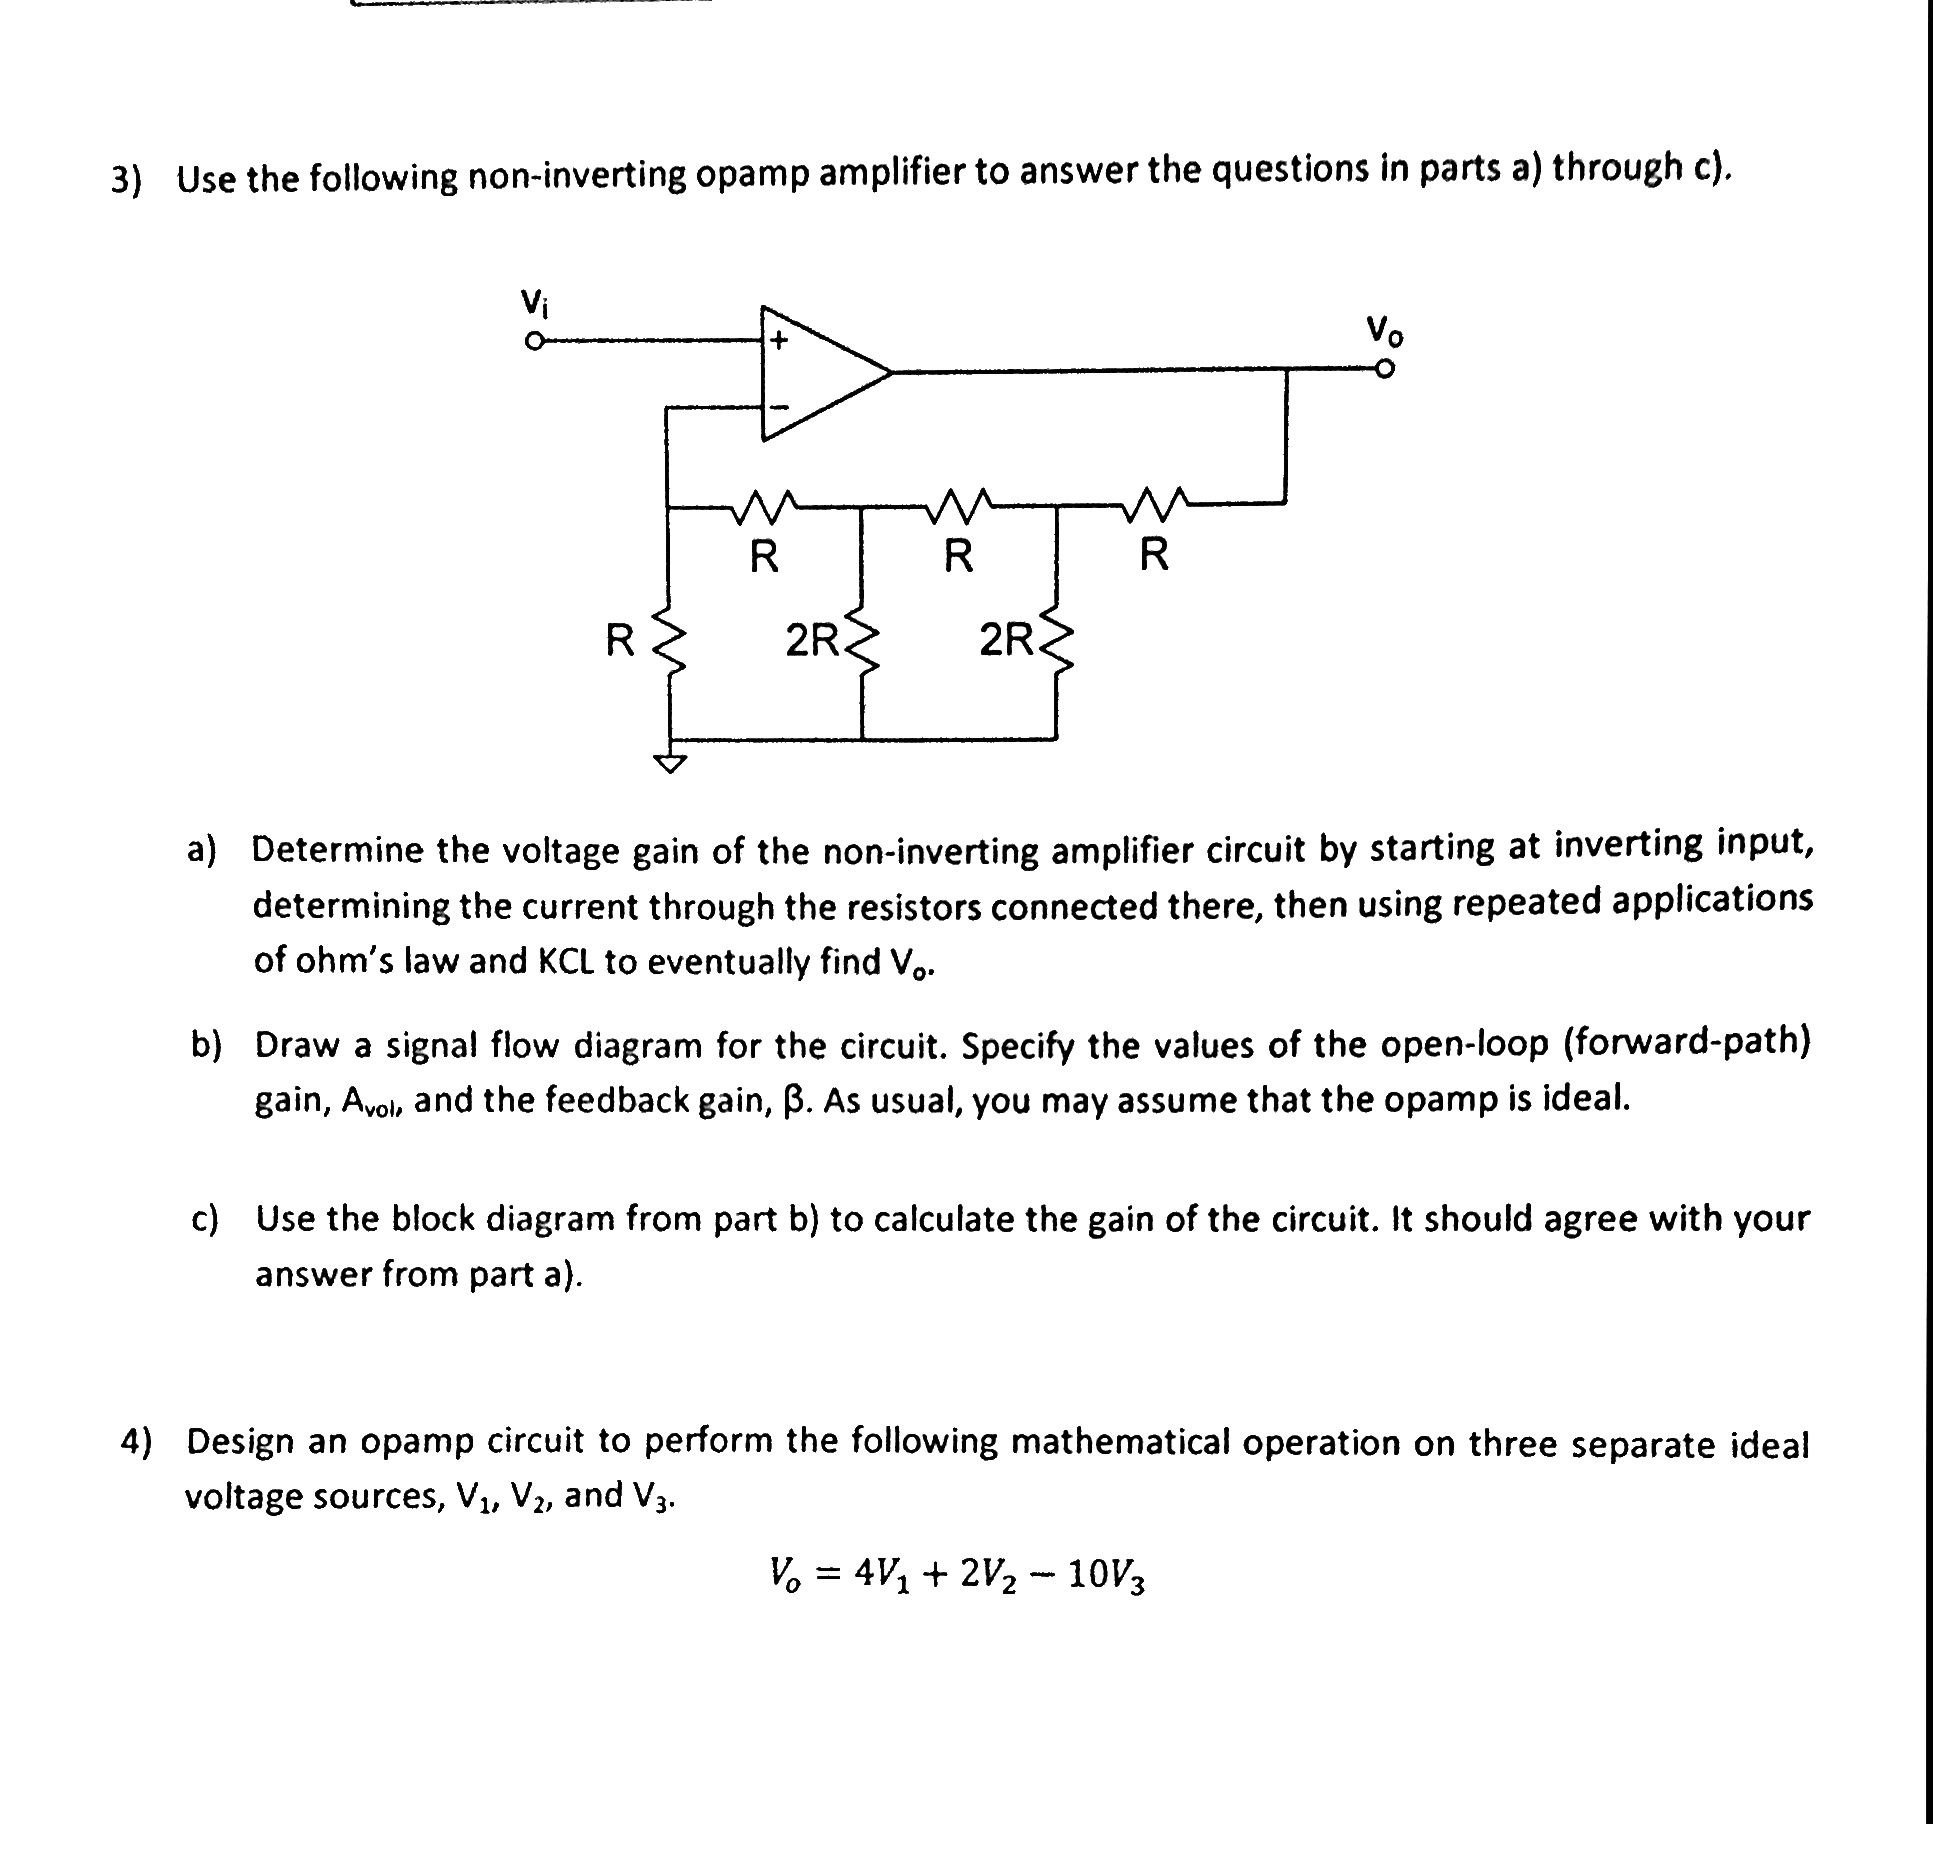 hight resolution of question 3 use the following non inverting opamp amplifier to answer the questions in parts a through c a determine the voltage gain of the